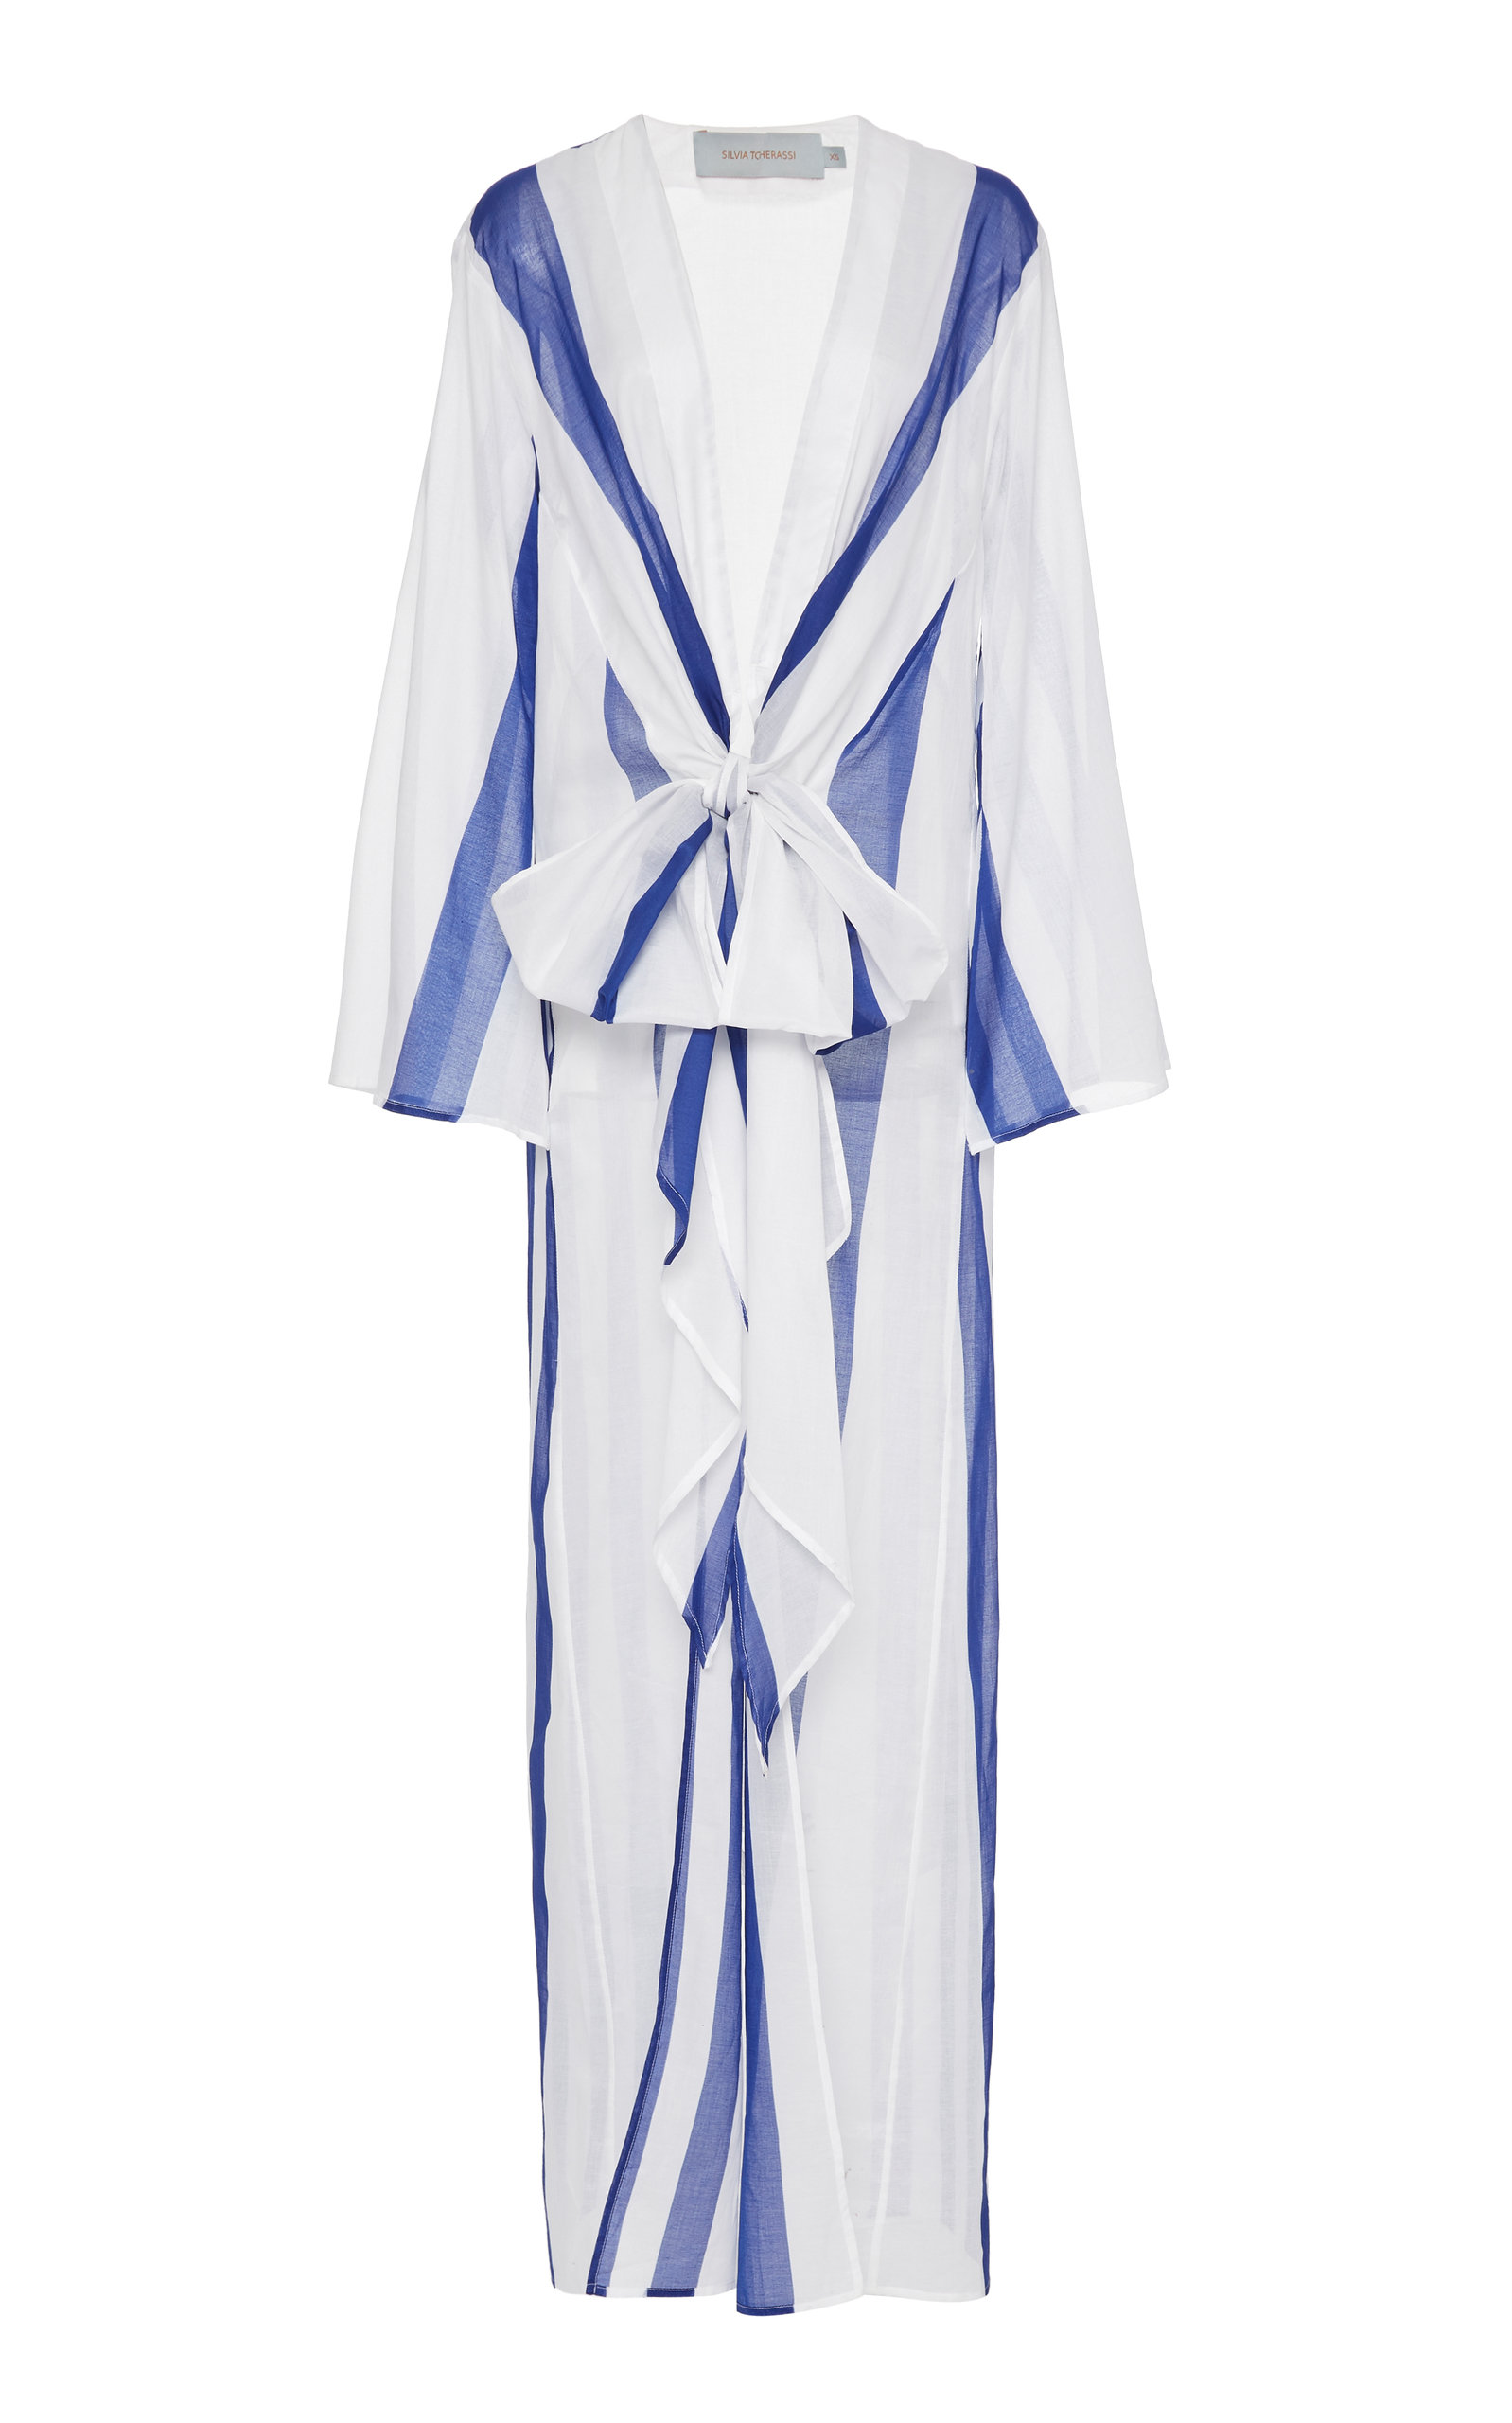 Silvia Tcherassi CALITRI STRIPED SHEER COTTON ROBE